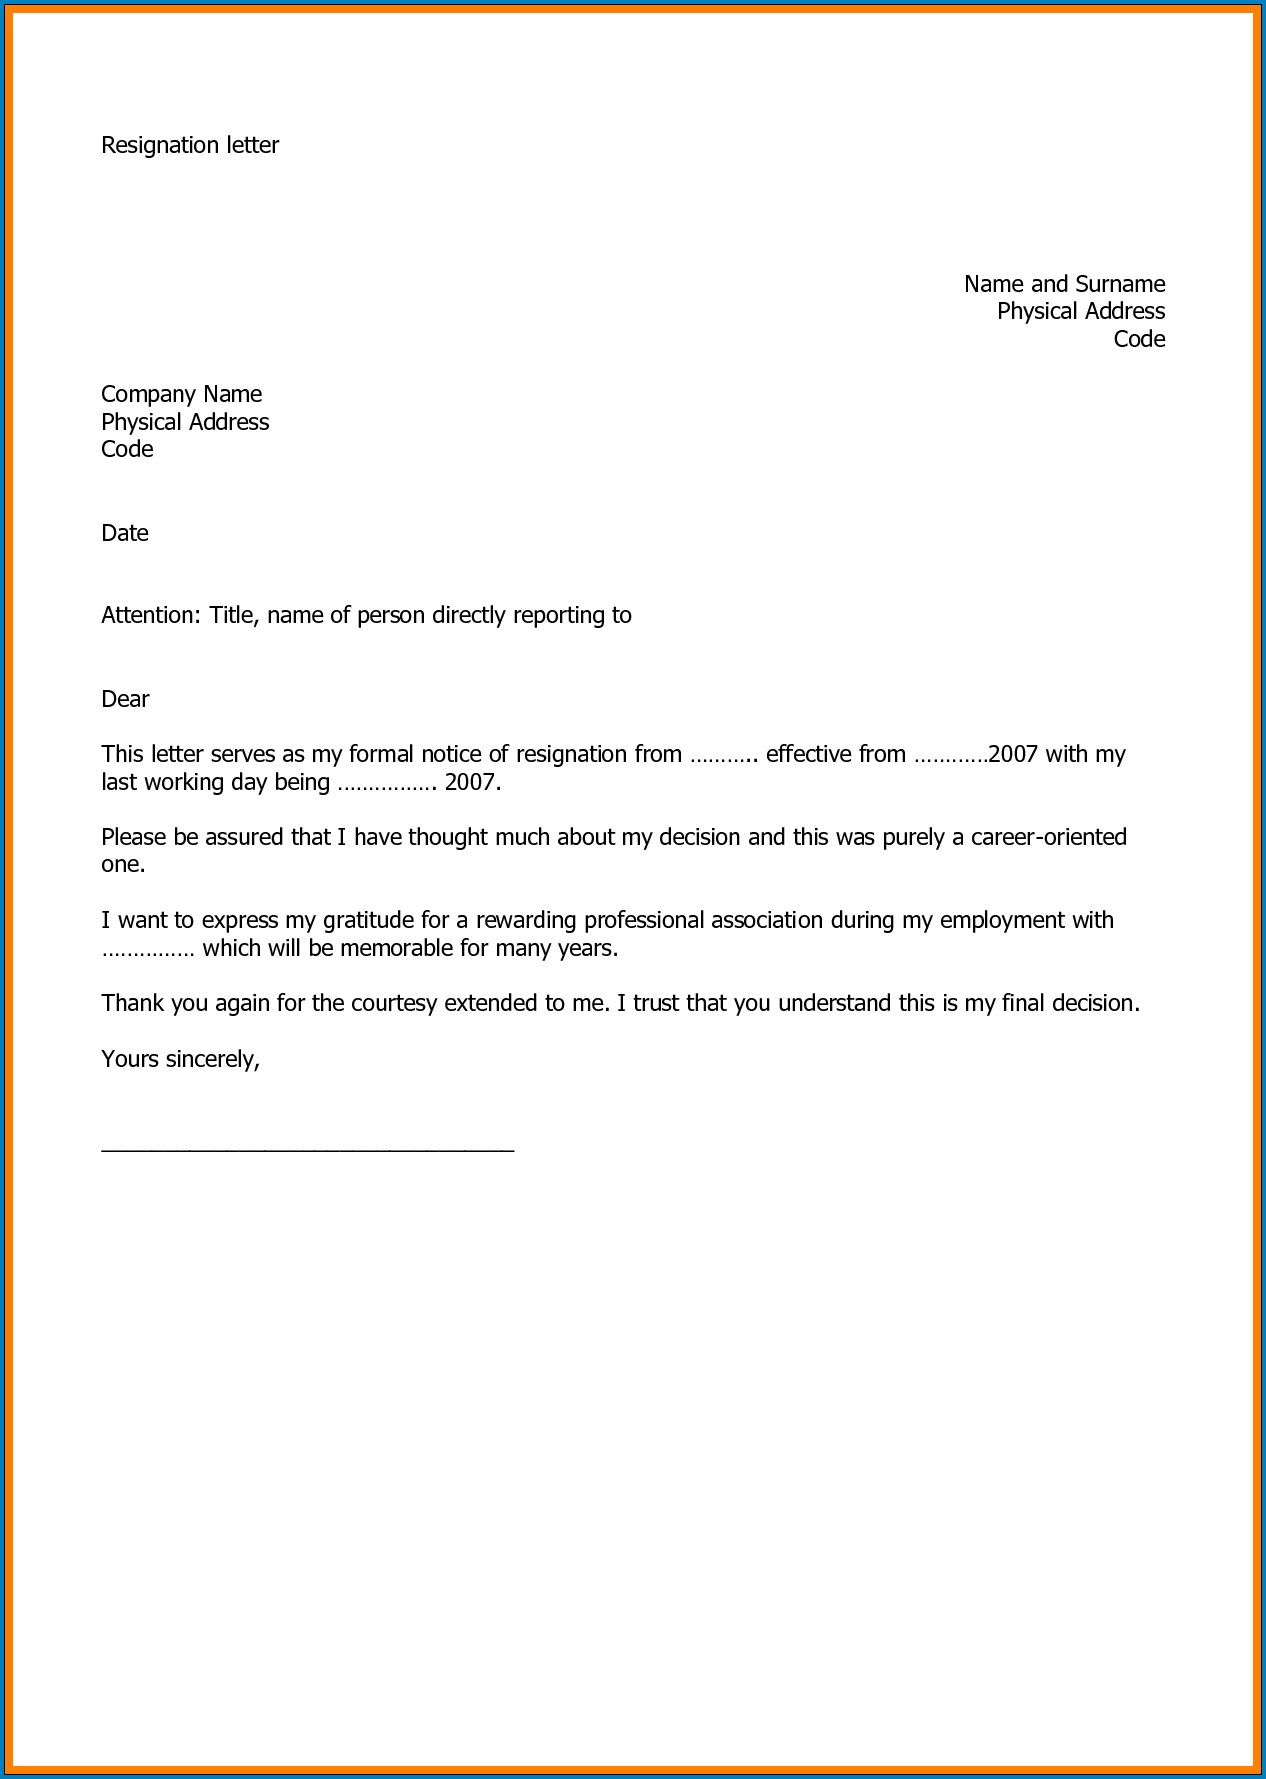 005 Marvelou Professional Resignation Letter Template Design  Best Format Pdf How To Write AFull